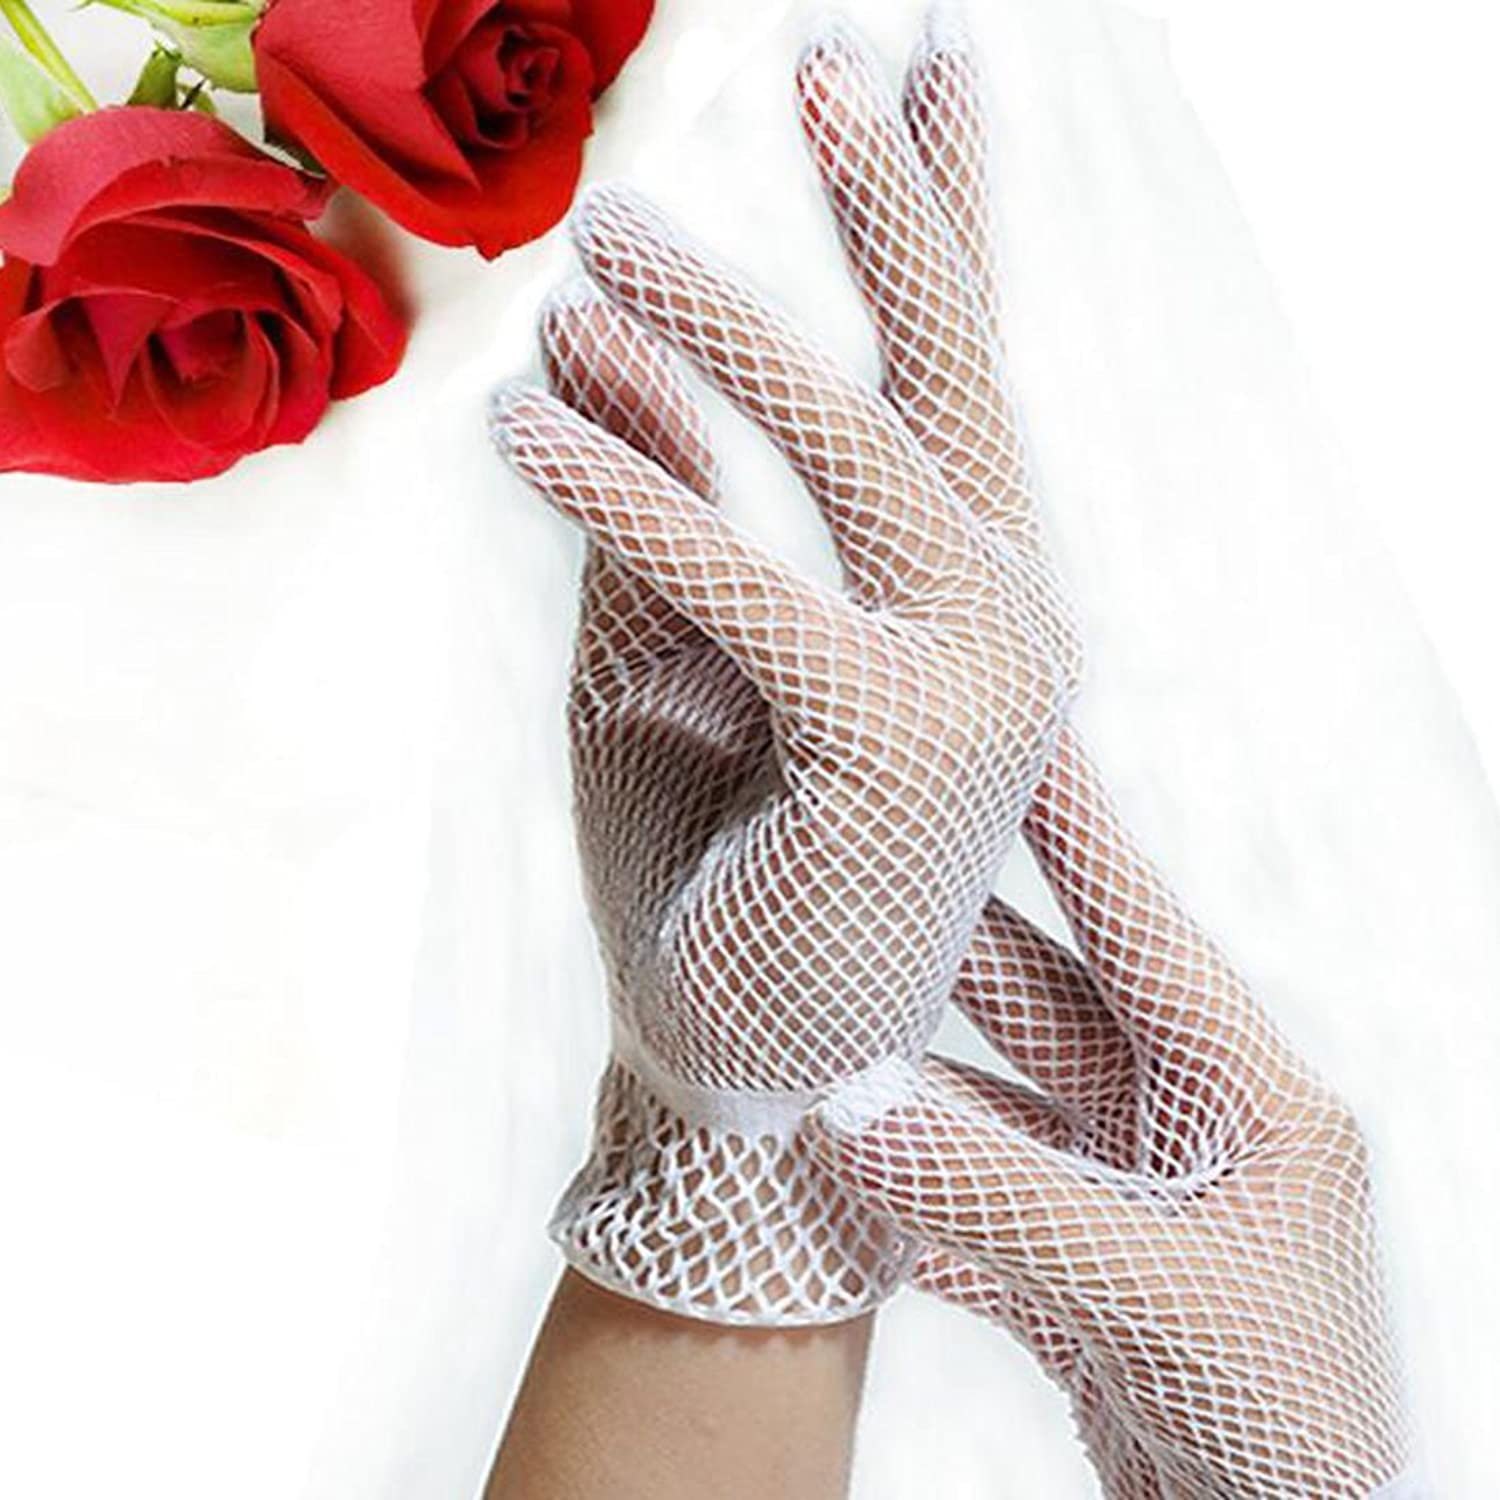 Vintage Inspired Wedding Accessories Fishnet Mesh Gloves Fashion Women Gloves Summer UV Protection Lace Glove White $2.11 AT vintagedancer.com